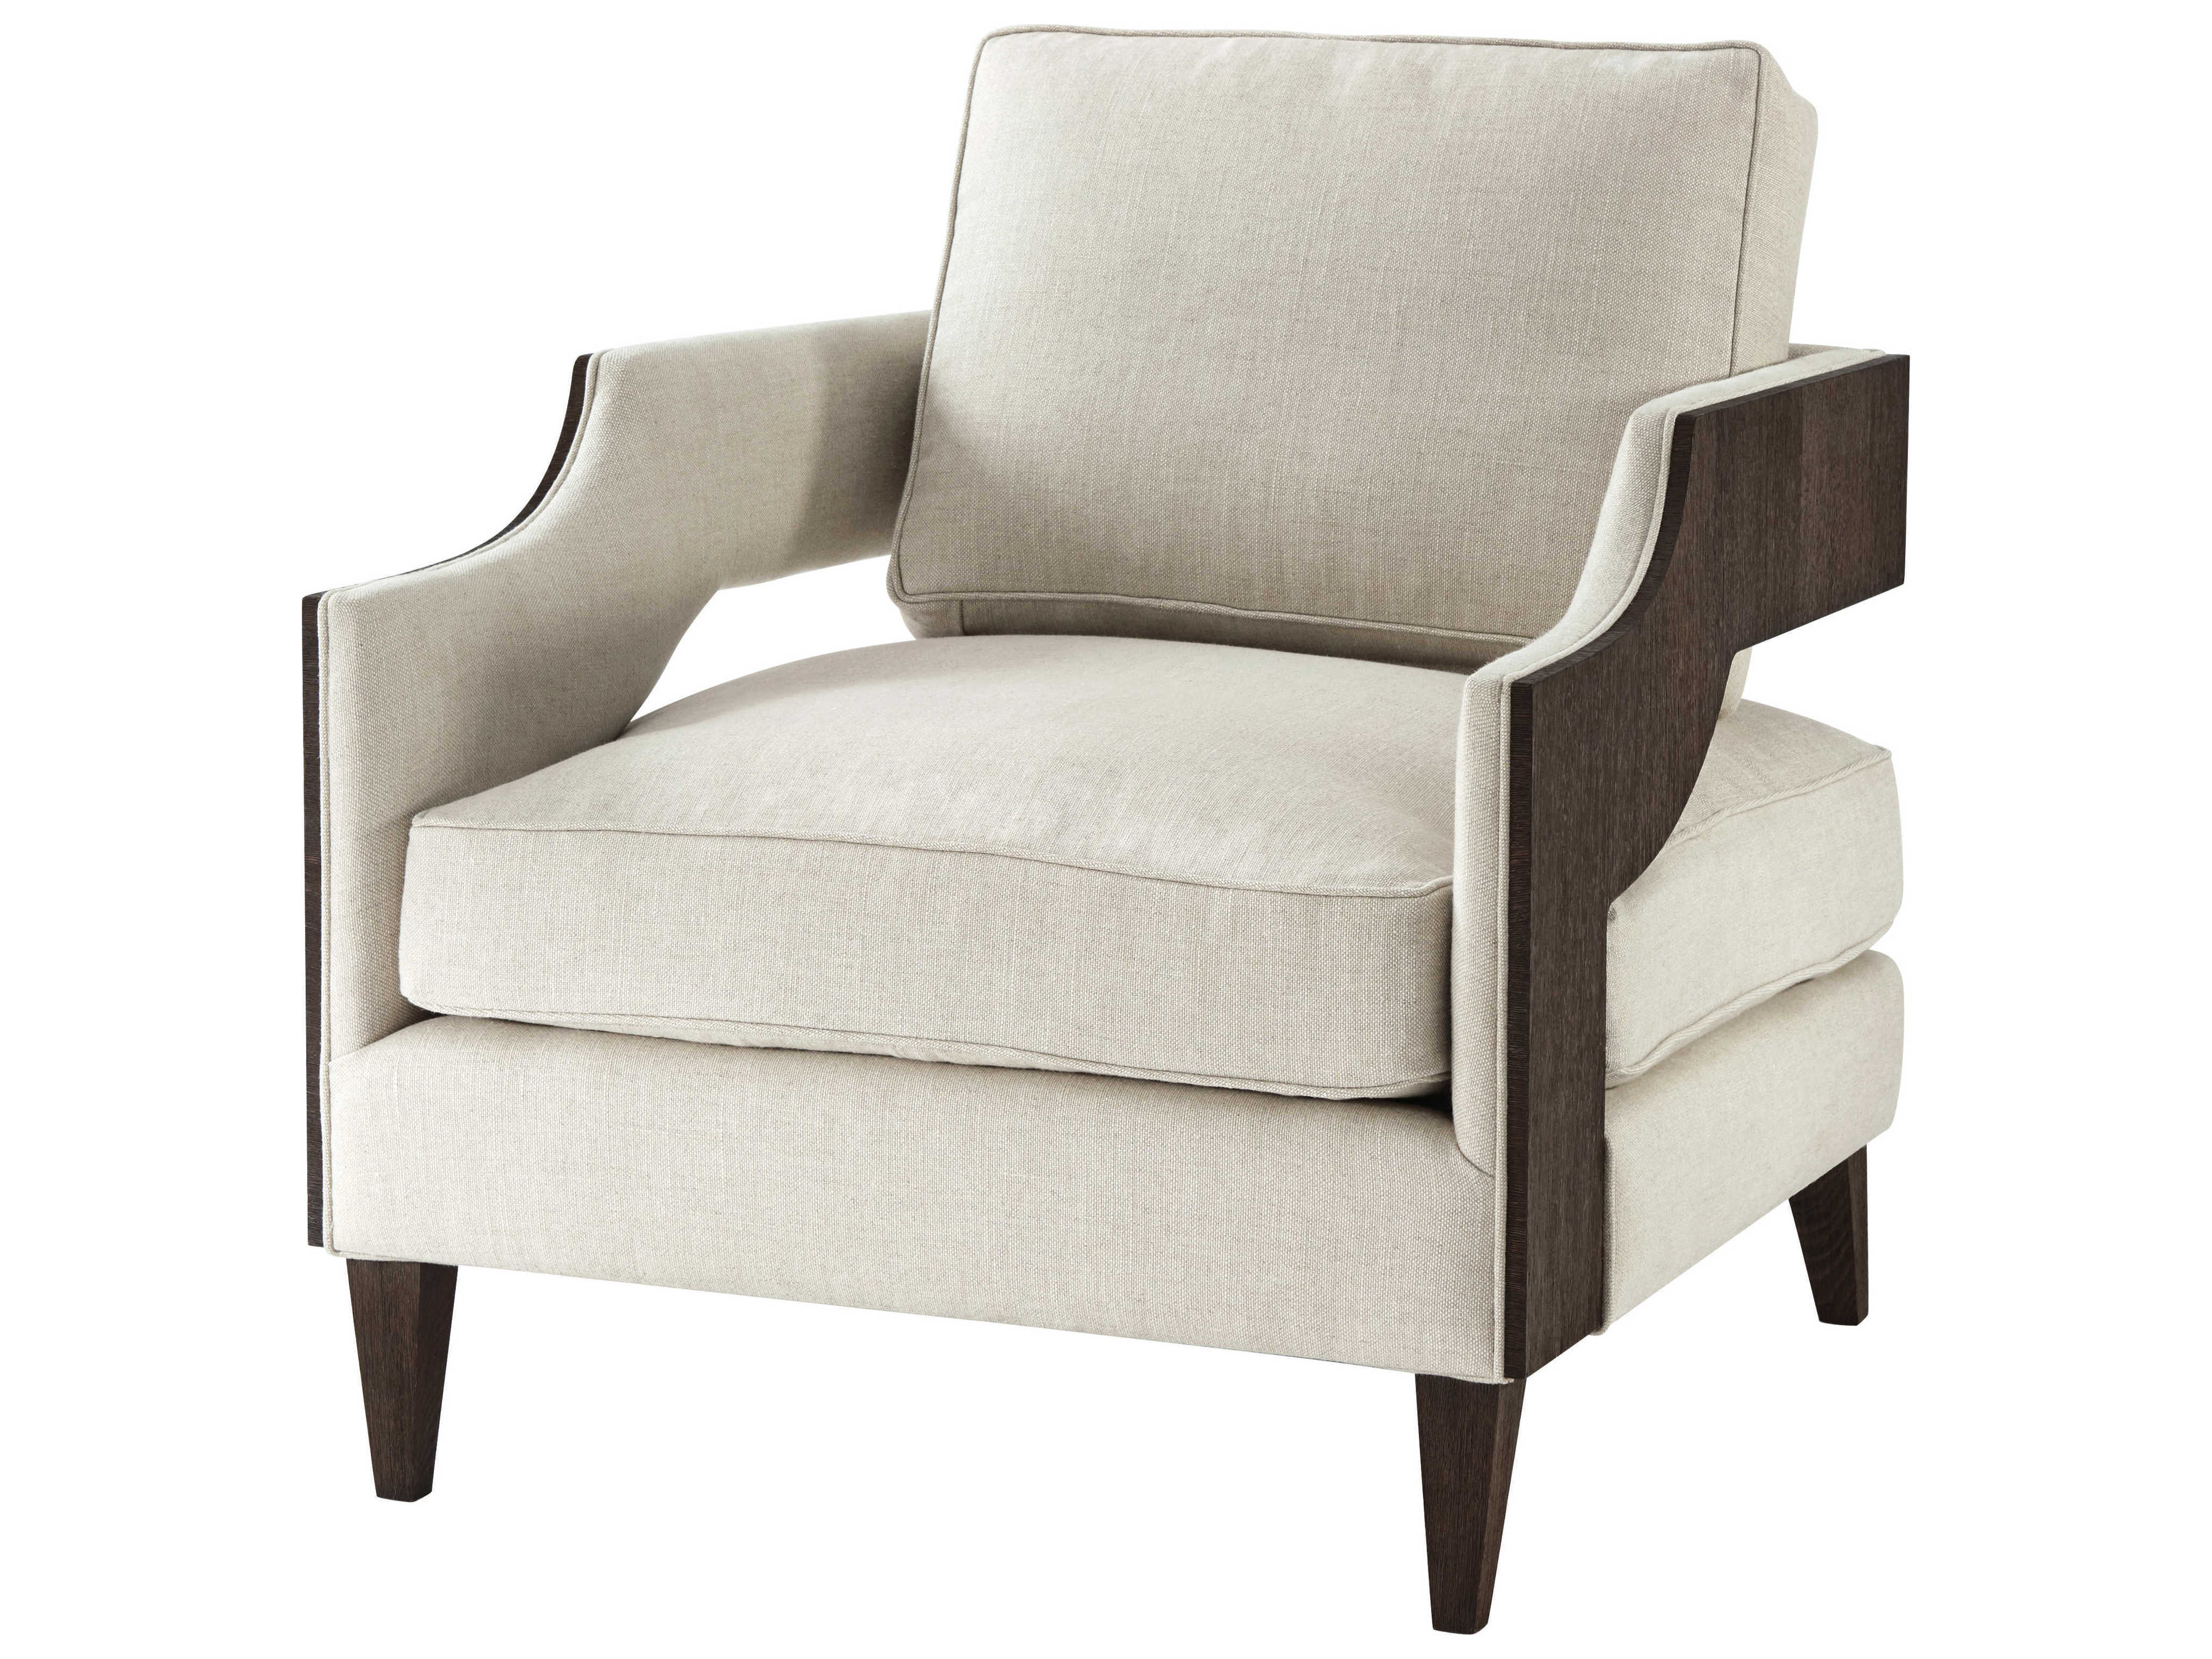 Peachy Theodore Alexander Cardamon Lati Accent Chair Short Links Chair Design For Home Short Linksinfo